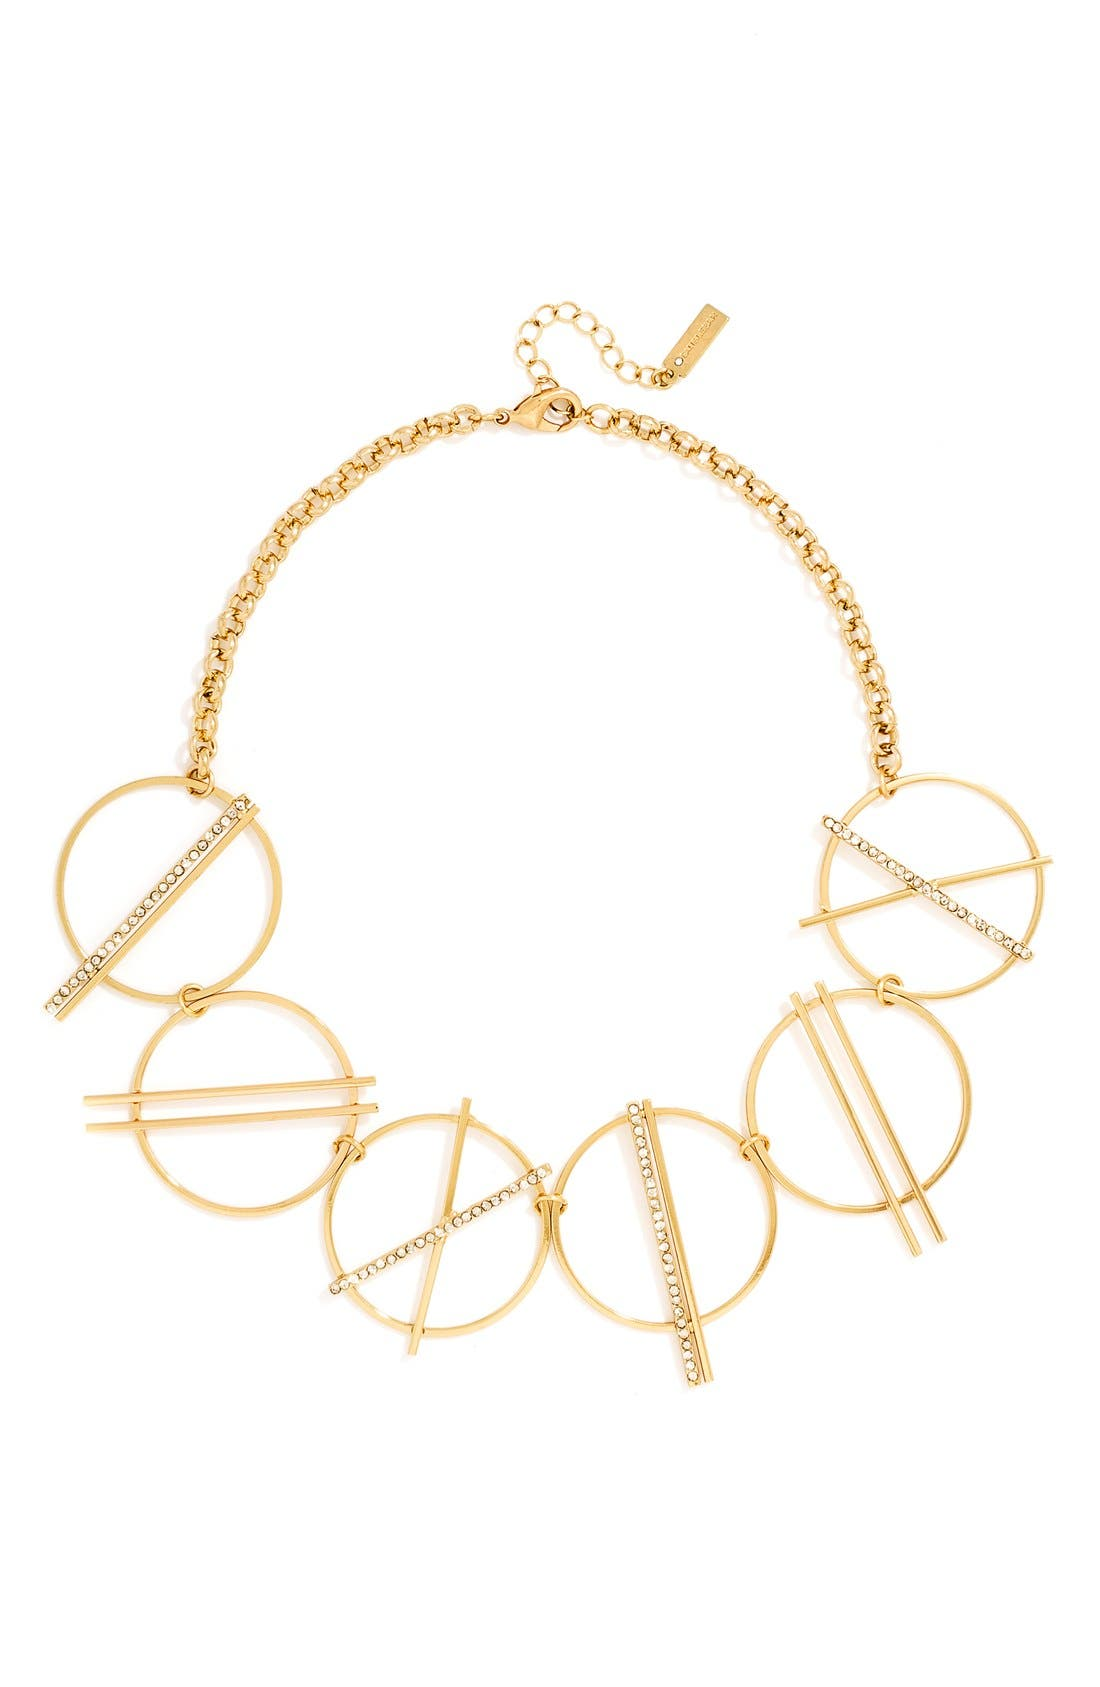 Main Image - BaubleBar 'Signs' Collar Necklace